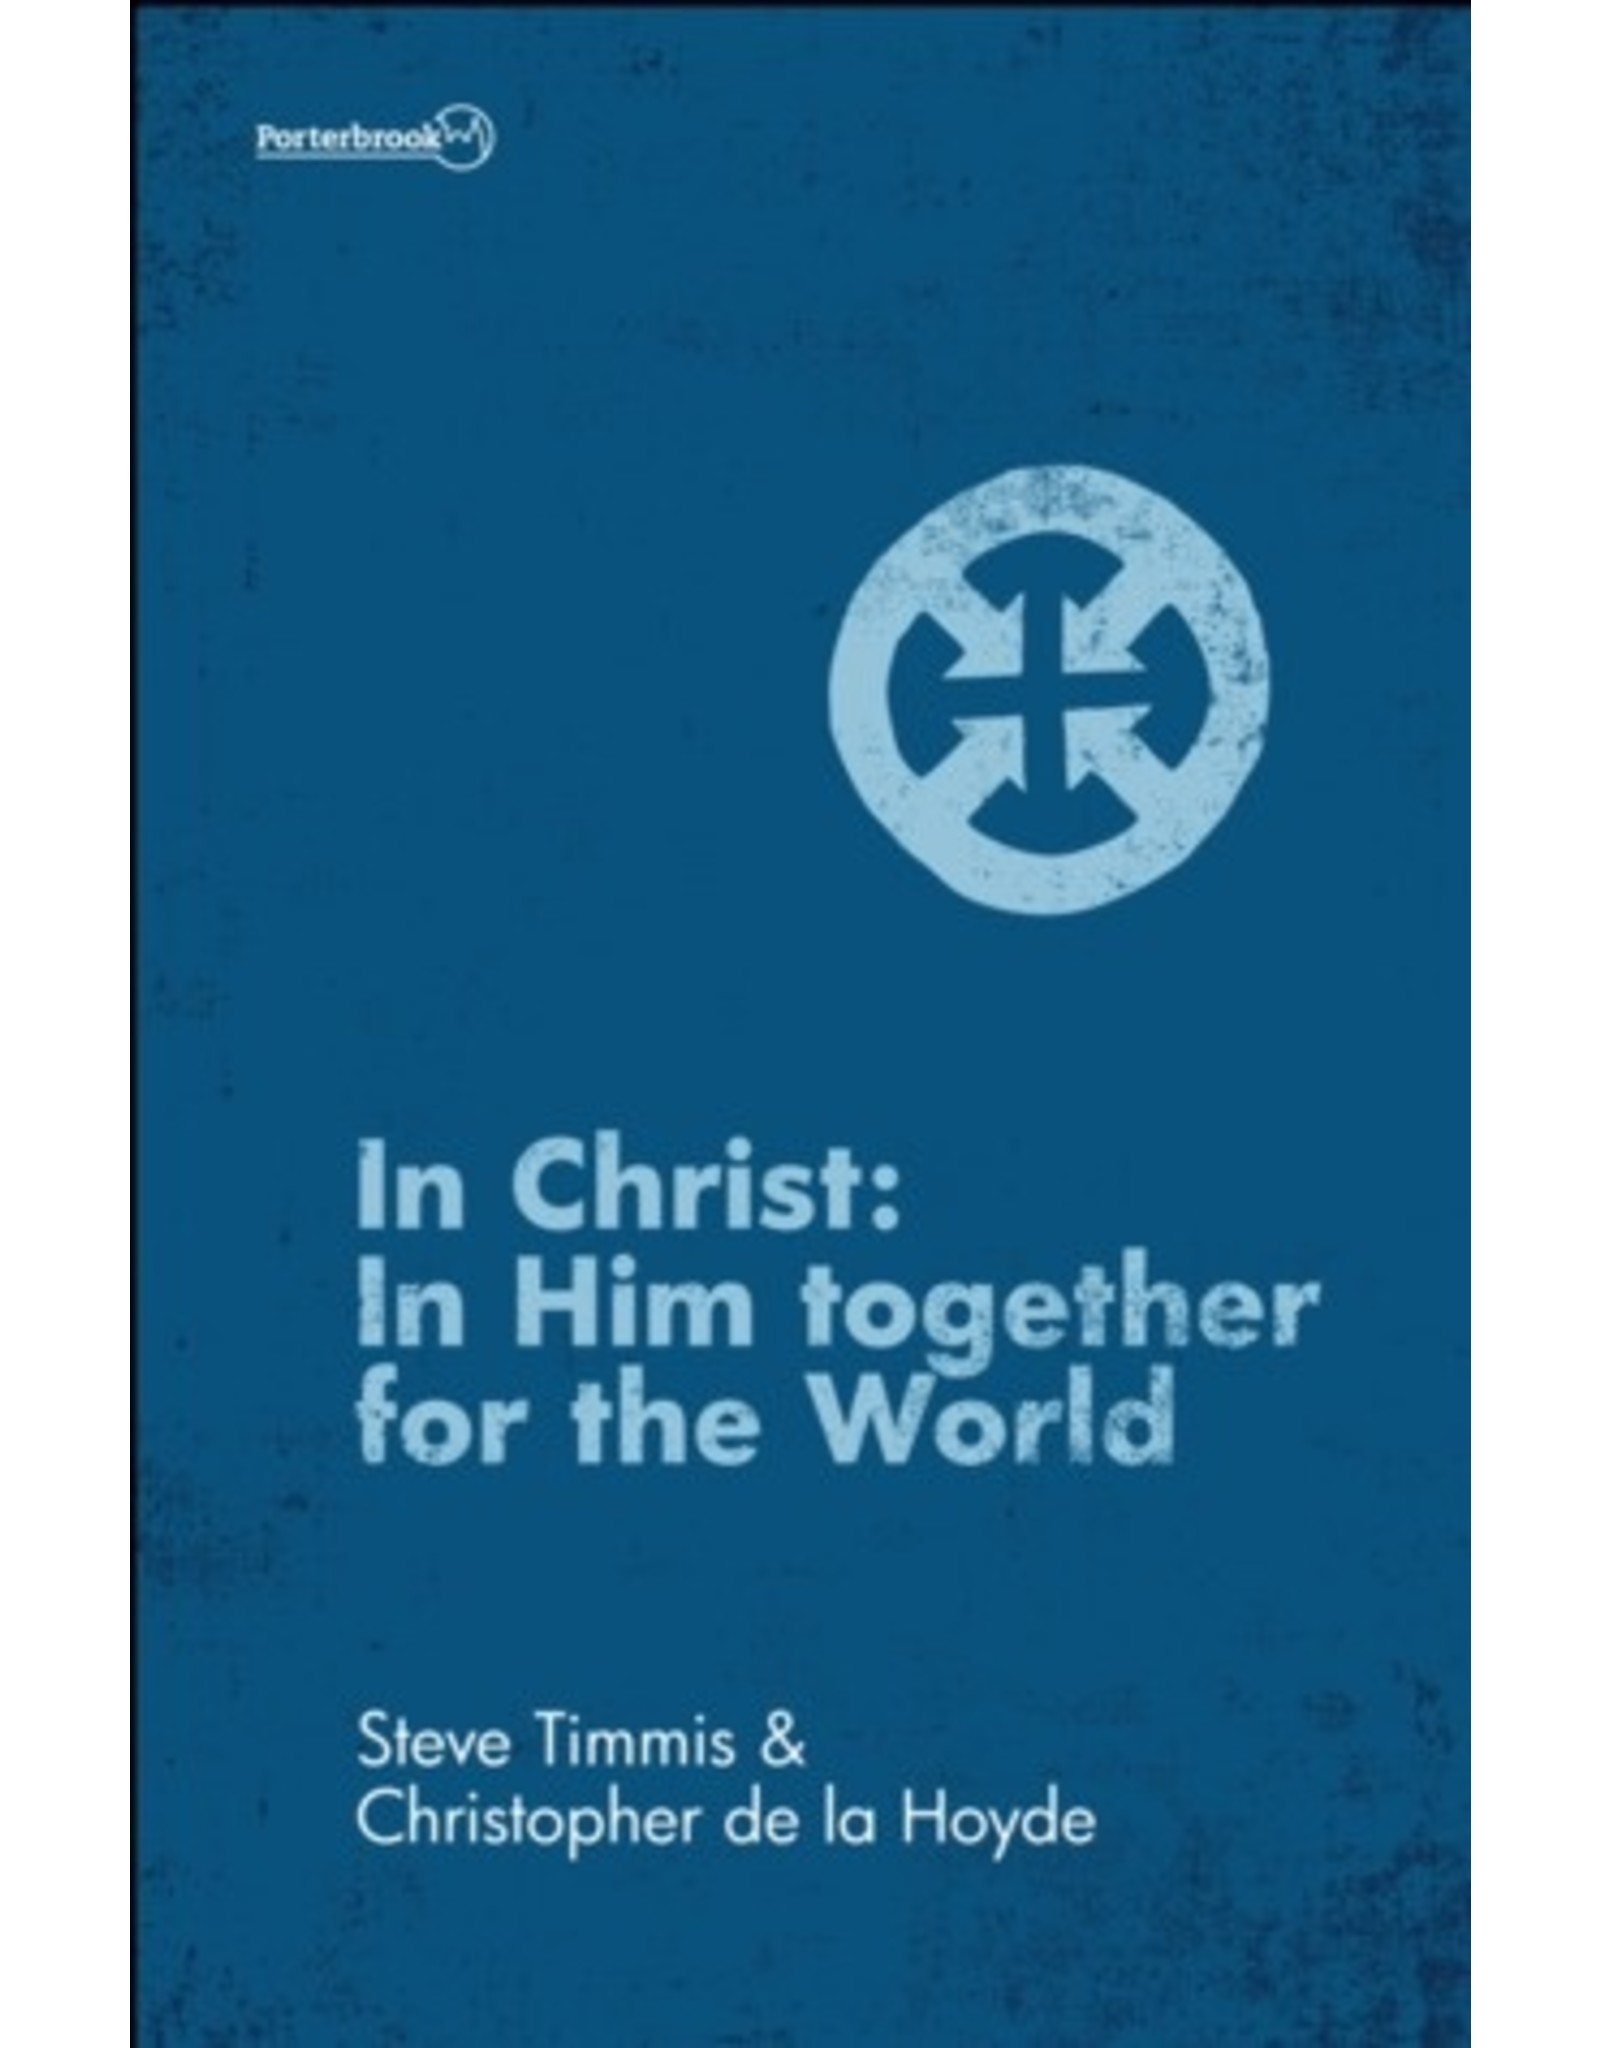 In Christ: In Him Together for the World